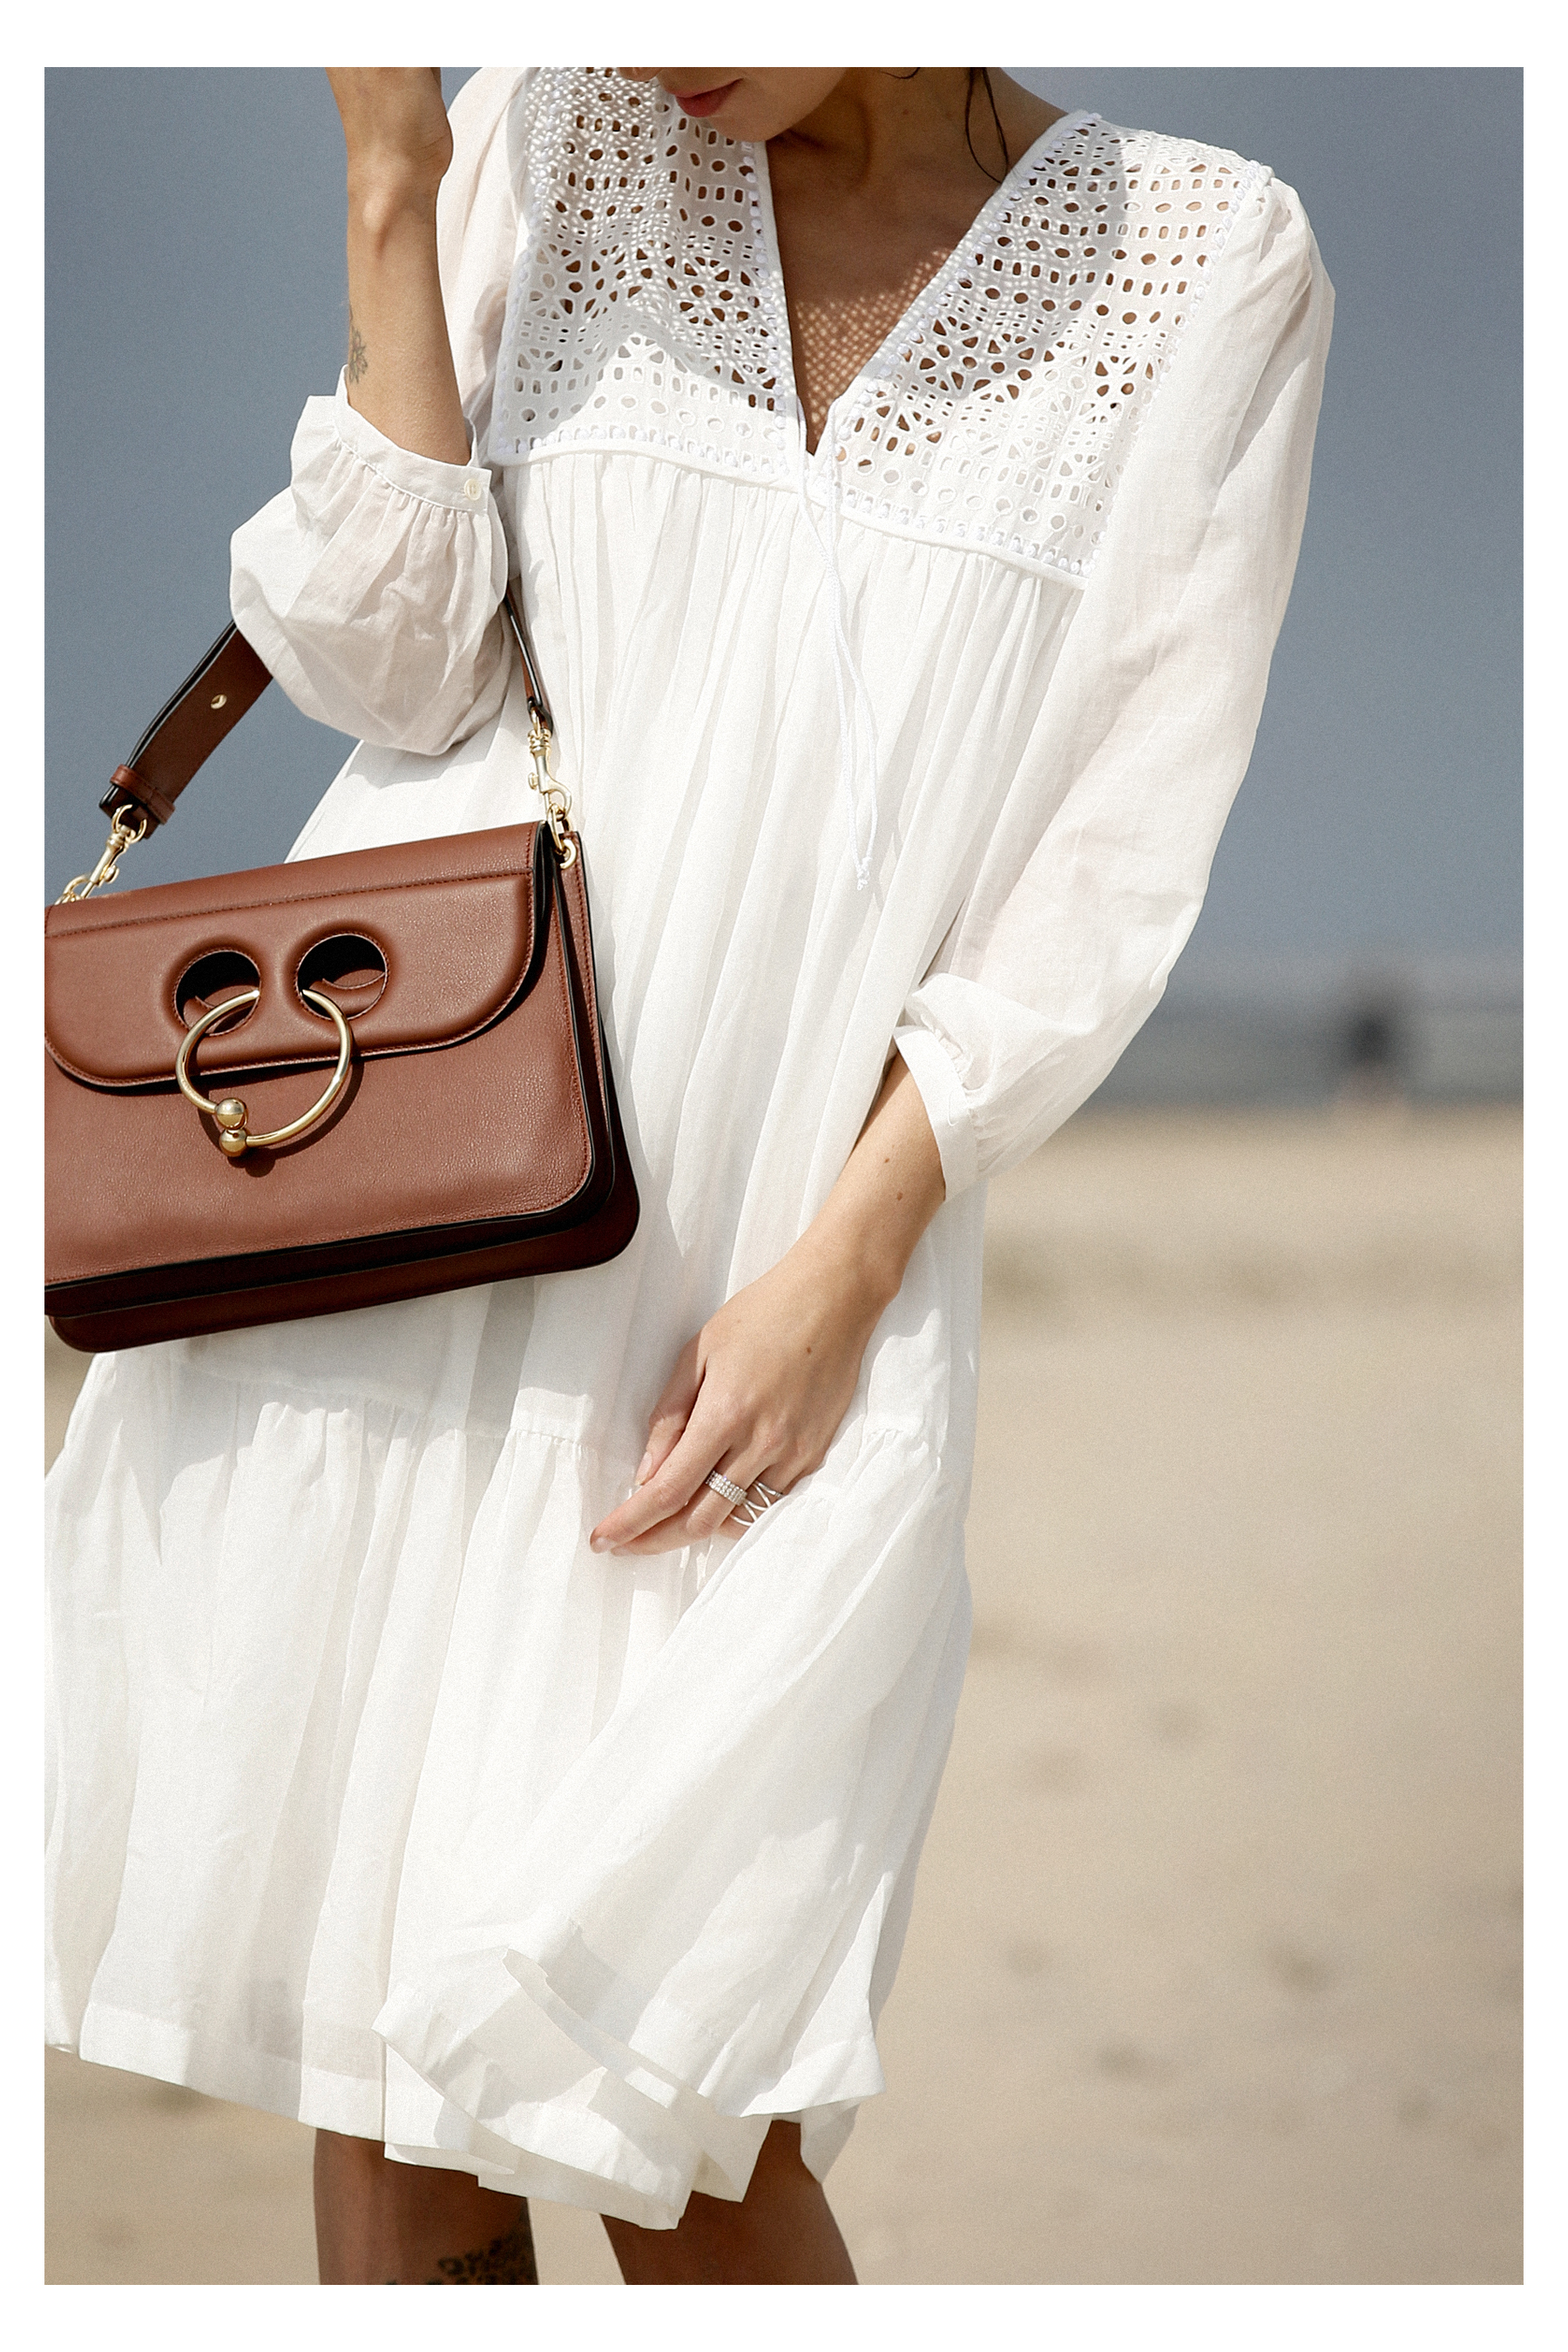 breuninger beach white dress closed j.w.anderson pierce bag straw hat summertime sunshine photography editorial vogue fashionblogger düsseldorf cats&dogs blog ricarda schernus modeblogger 6